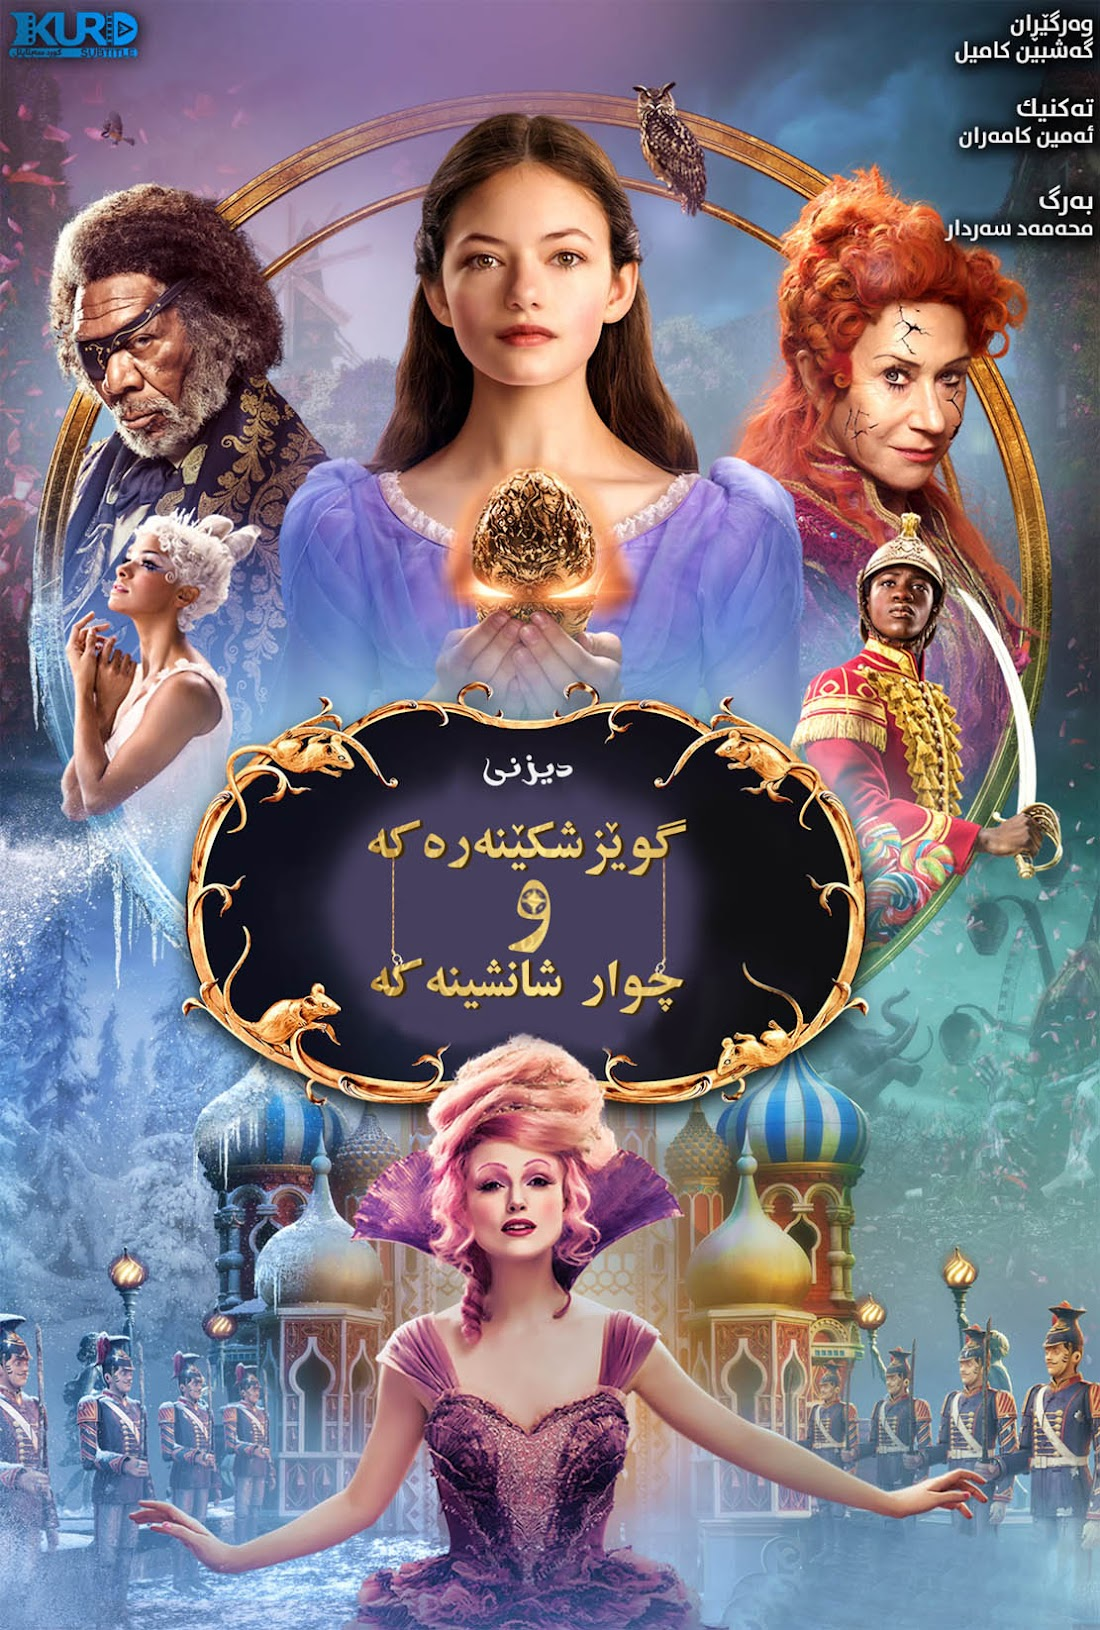 The Nutcracker and the Four Realms kurdish poster